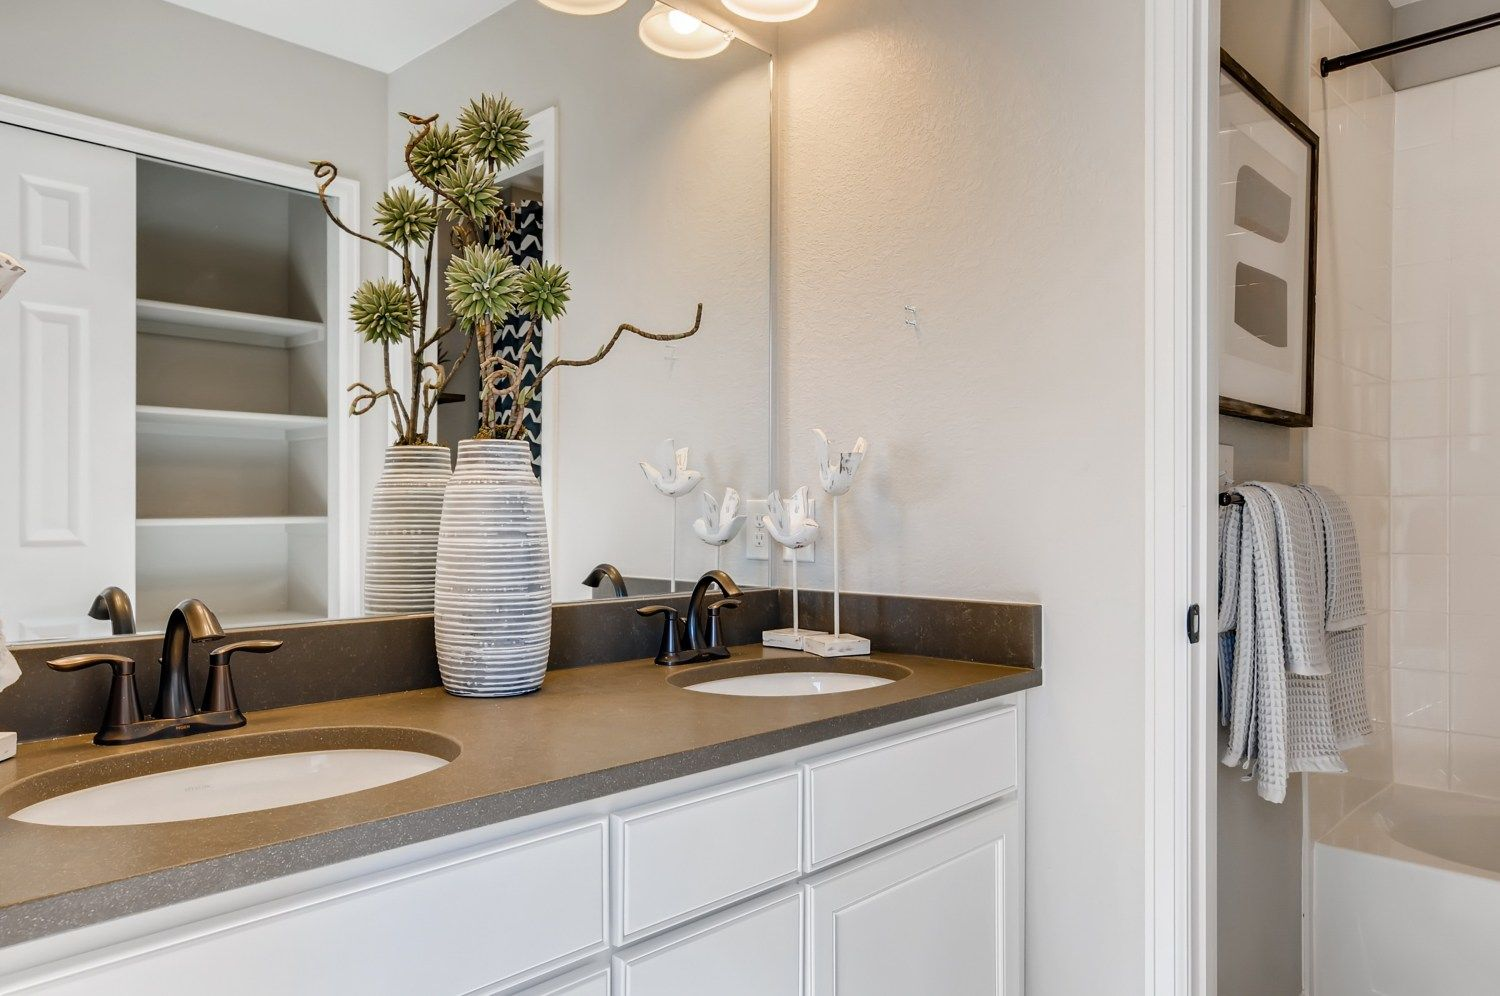 Bathroom featured in the Stella By Taylor Morrison in Denver, CO